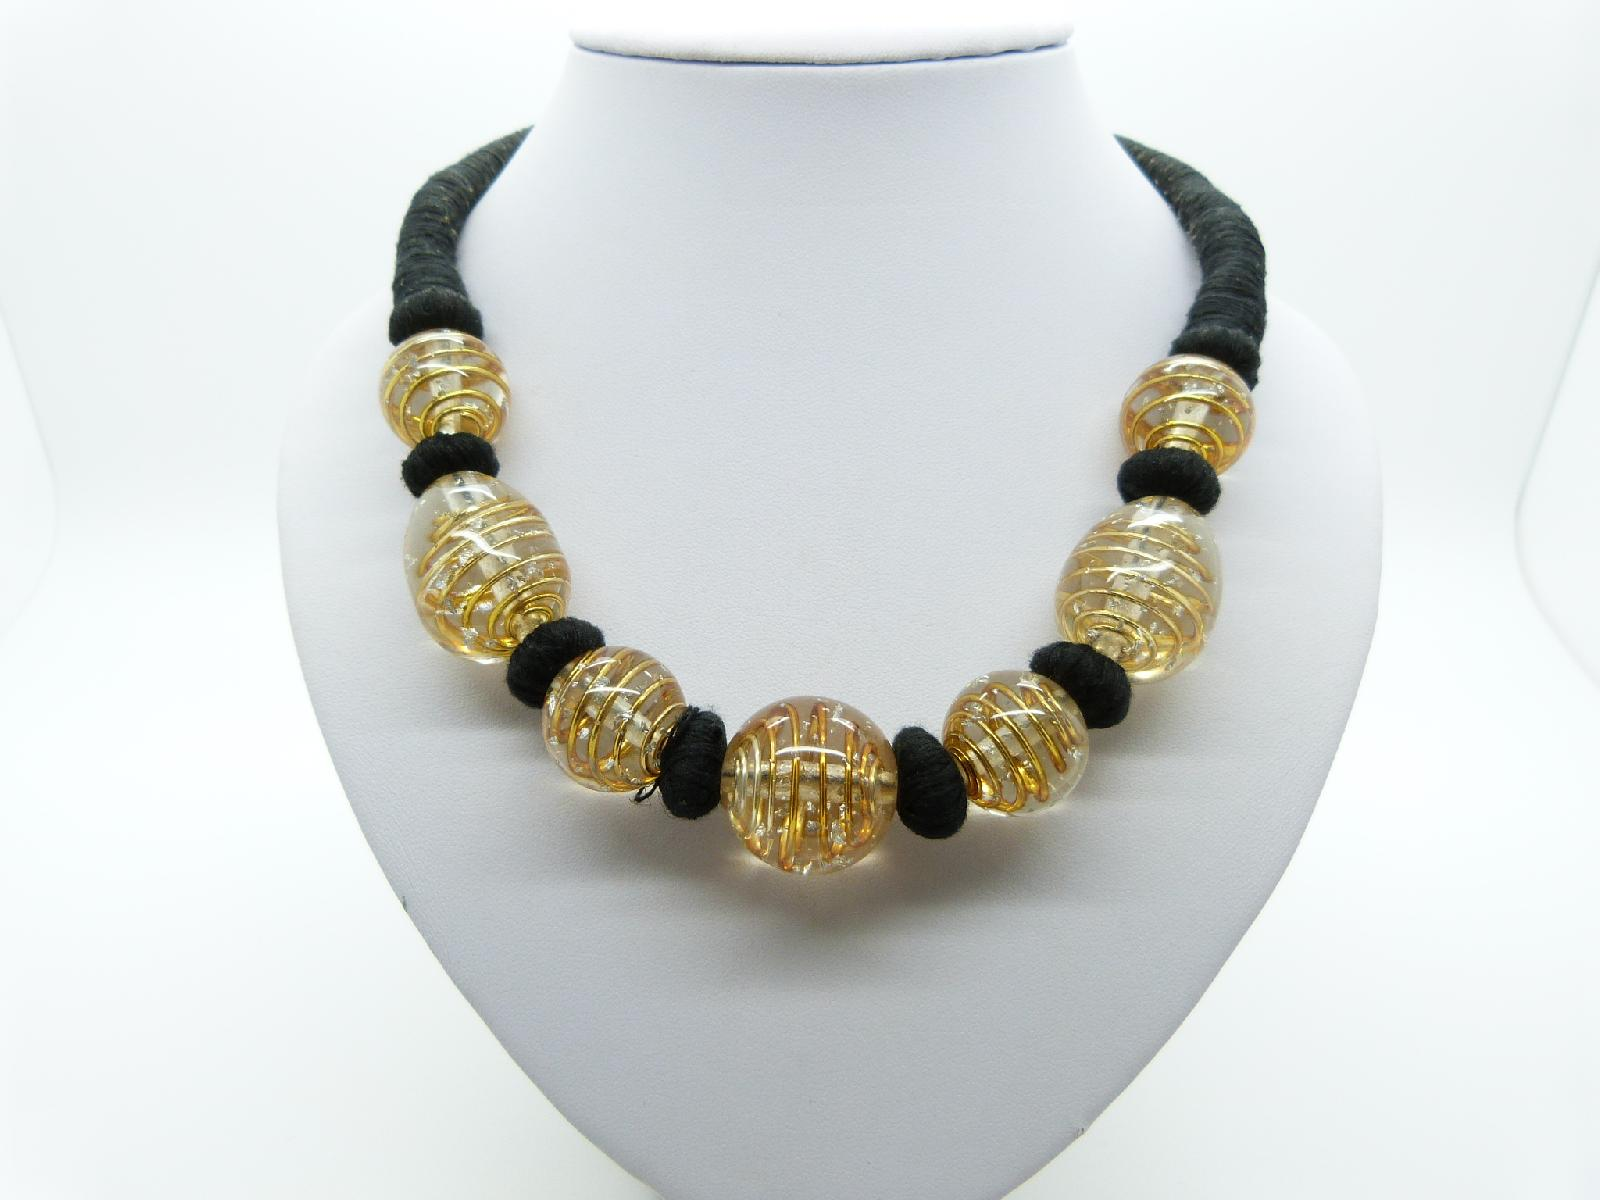 £22.00 - Vintage 80s Attractive Gold Spiral Murano Glass Bead Black Corded Necklace 51cms